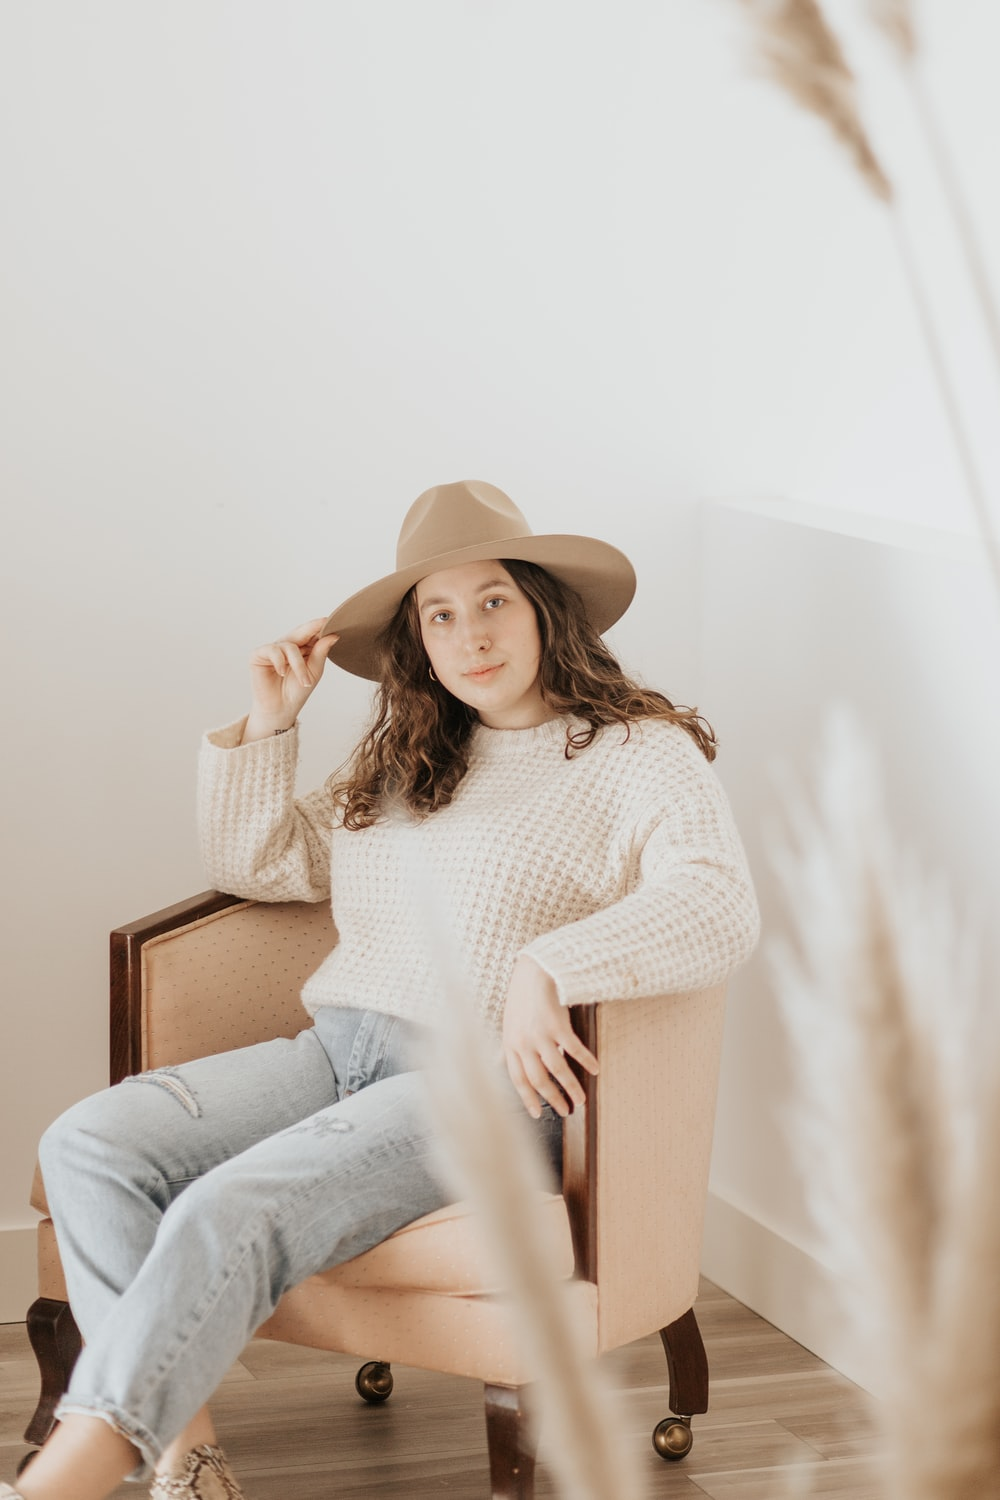 woman in white long sleeve shirt and blue denim jeans sitting on brown wooden chair